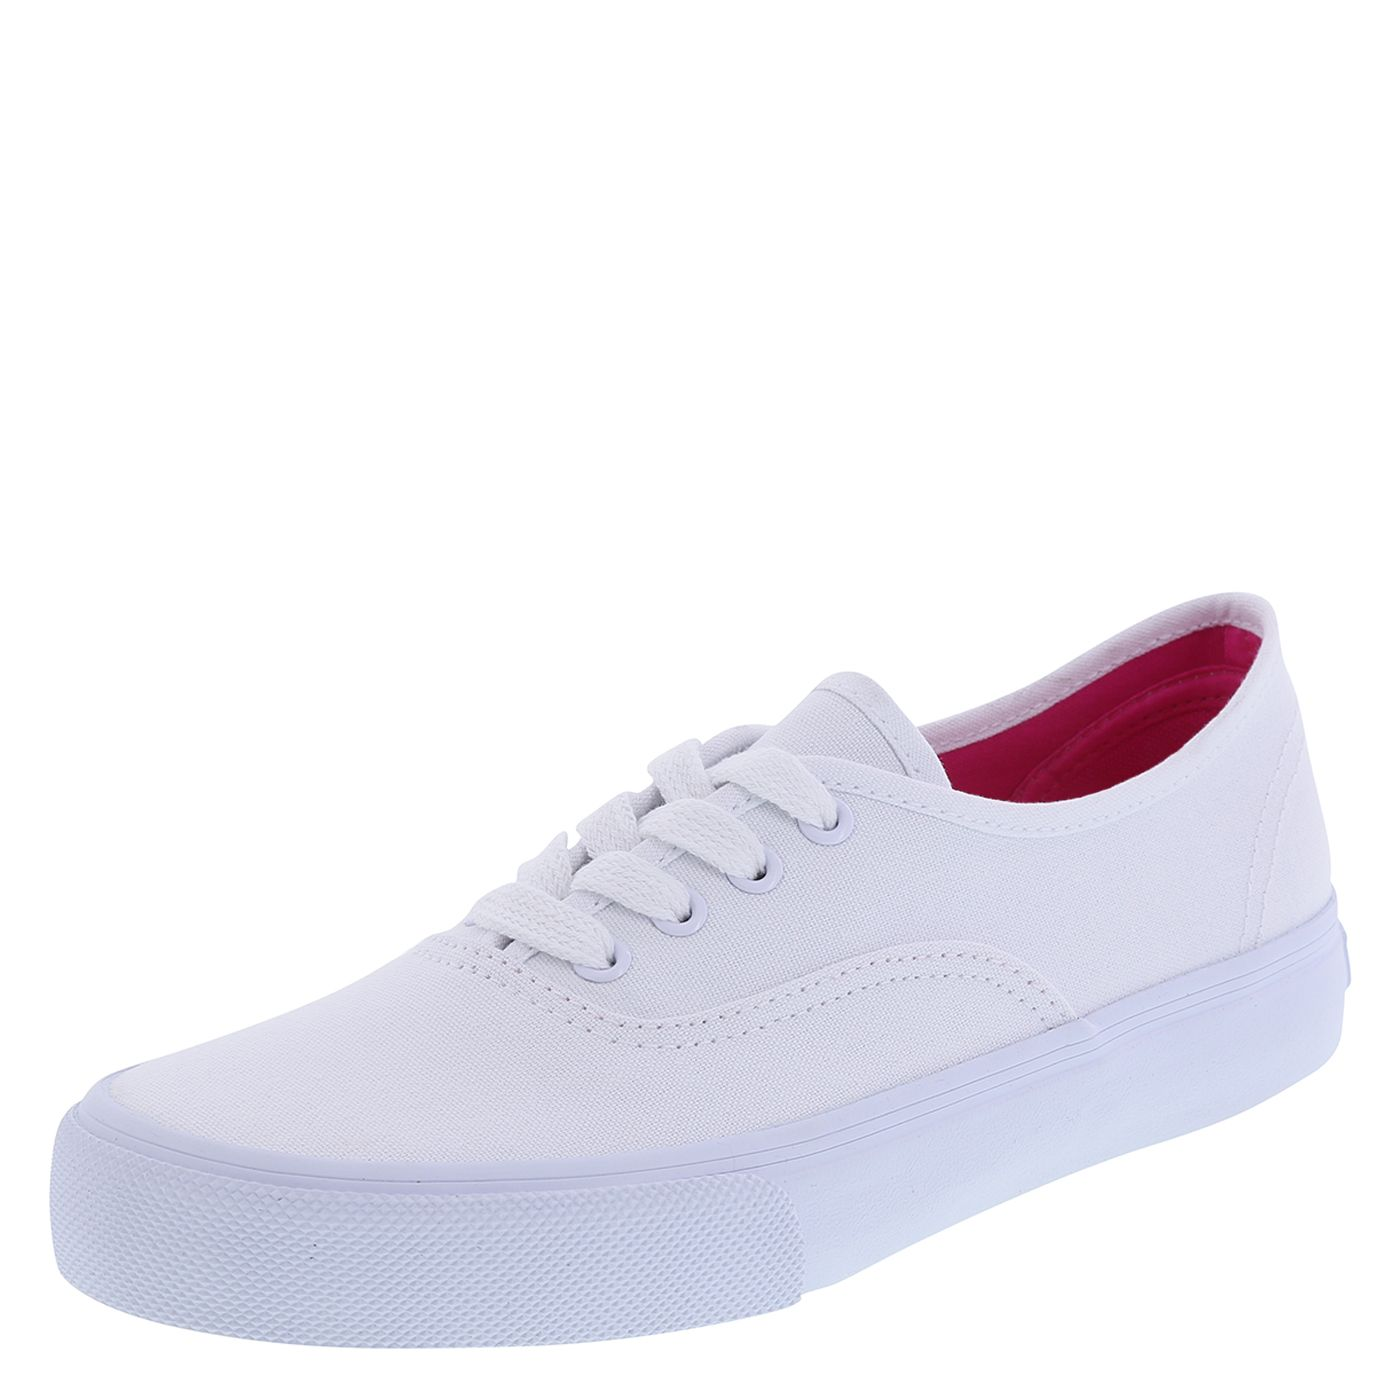 Womens Rio Sneaker Sg Sneakers Pinterest Store Free And Shopping